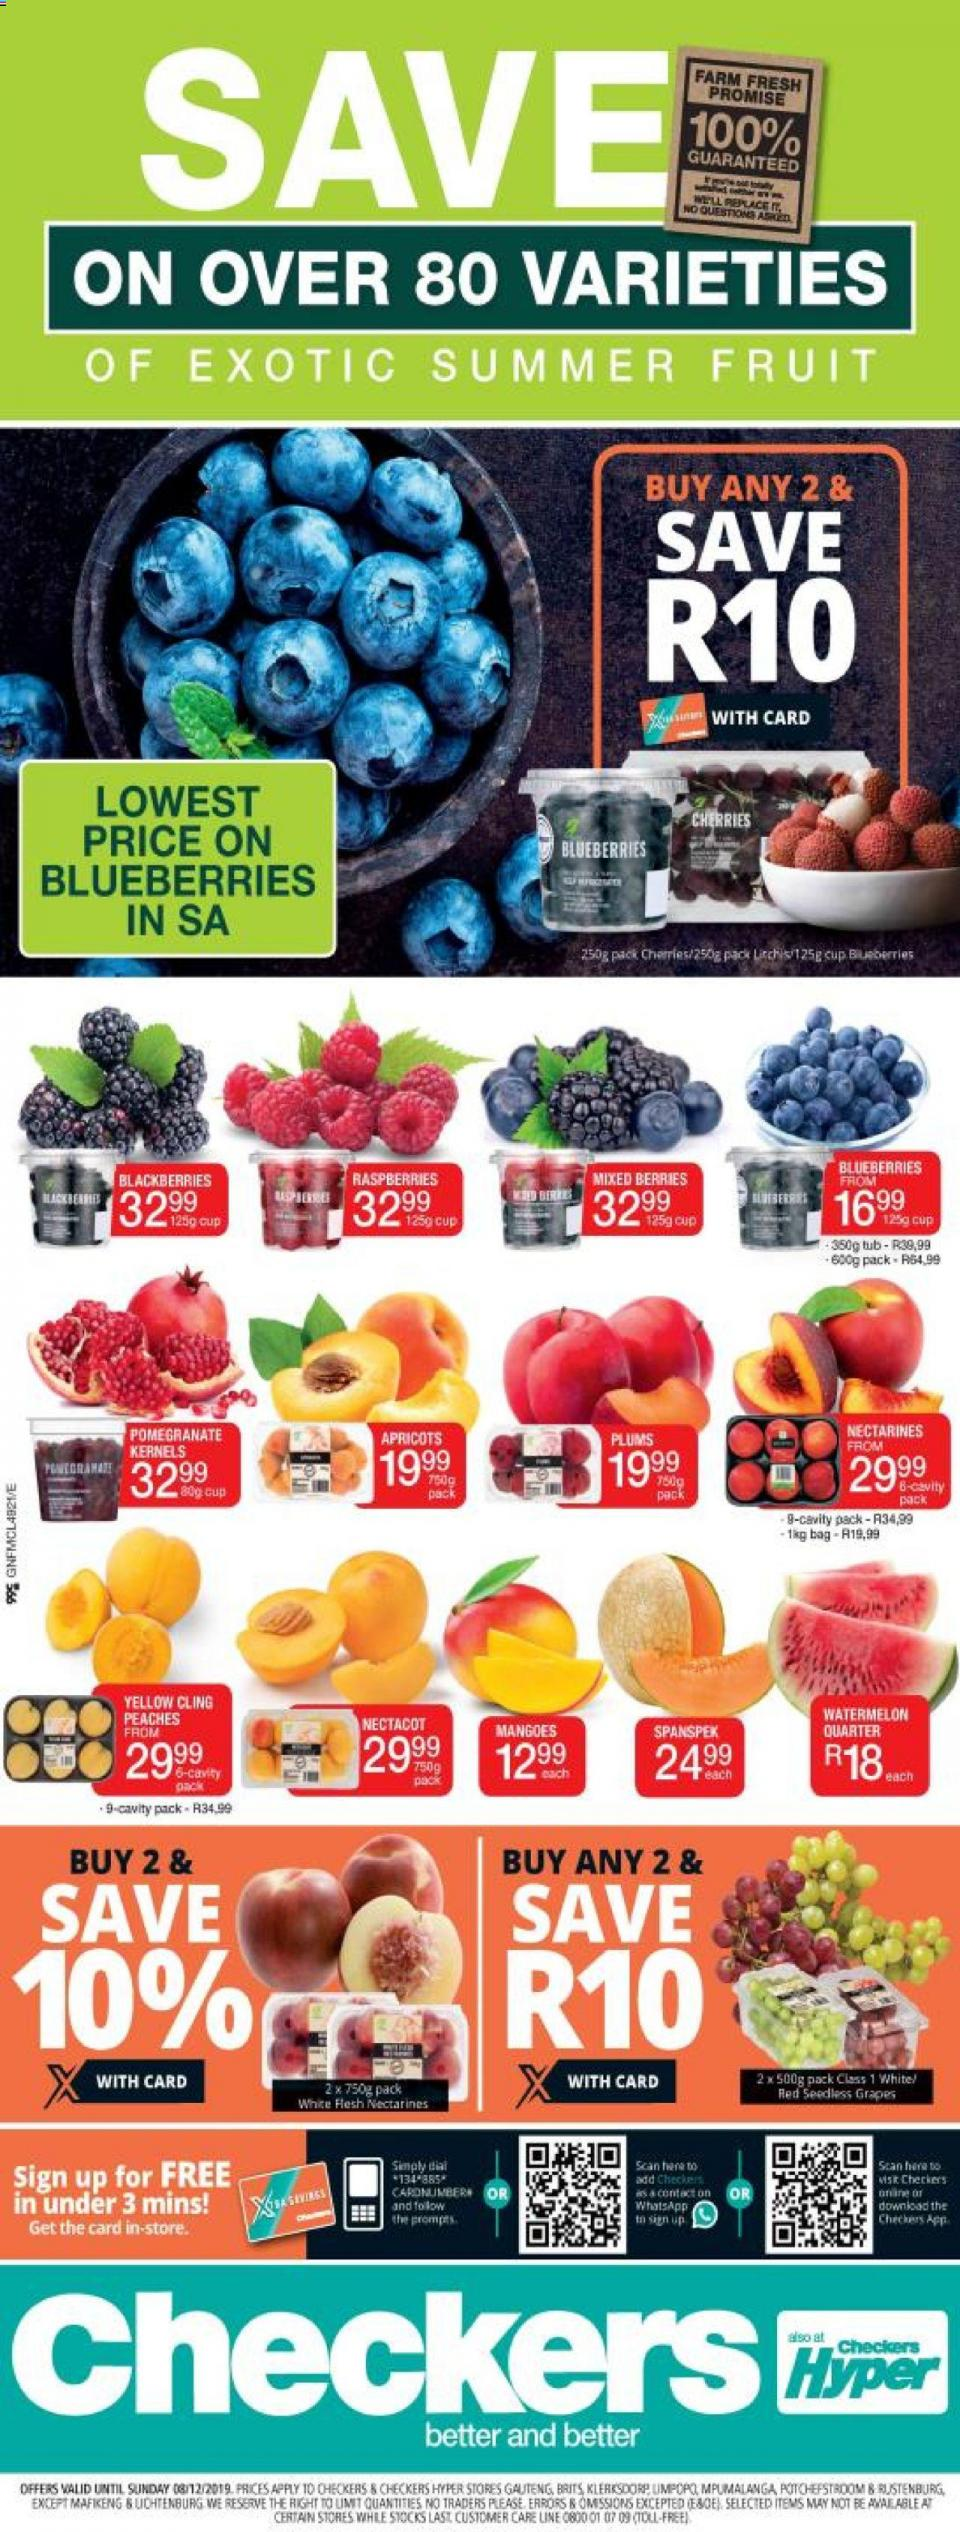 checkers specials great north exotic fruit promotion 02 december 2019